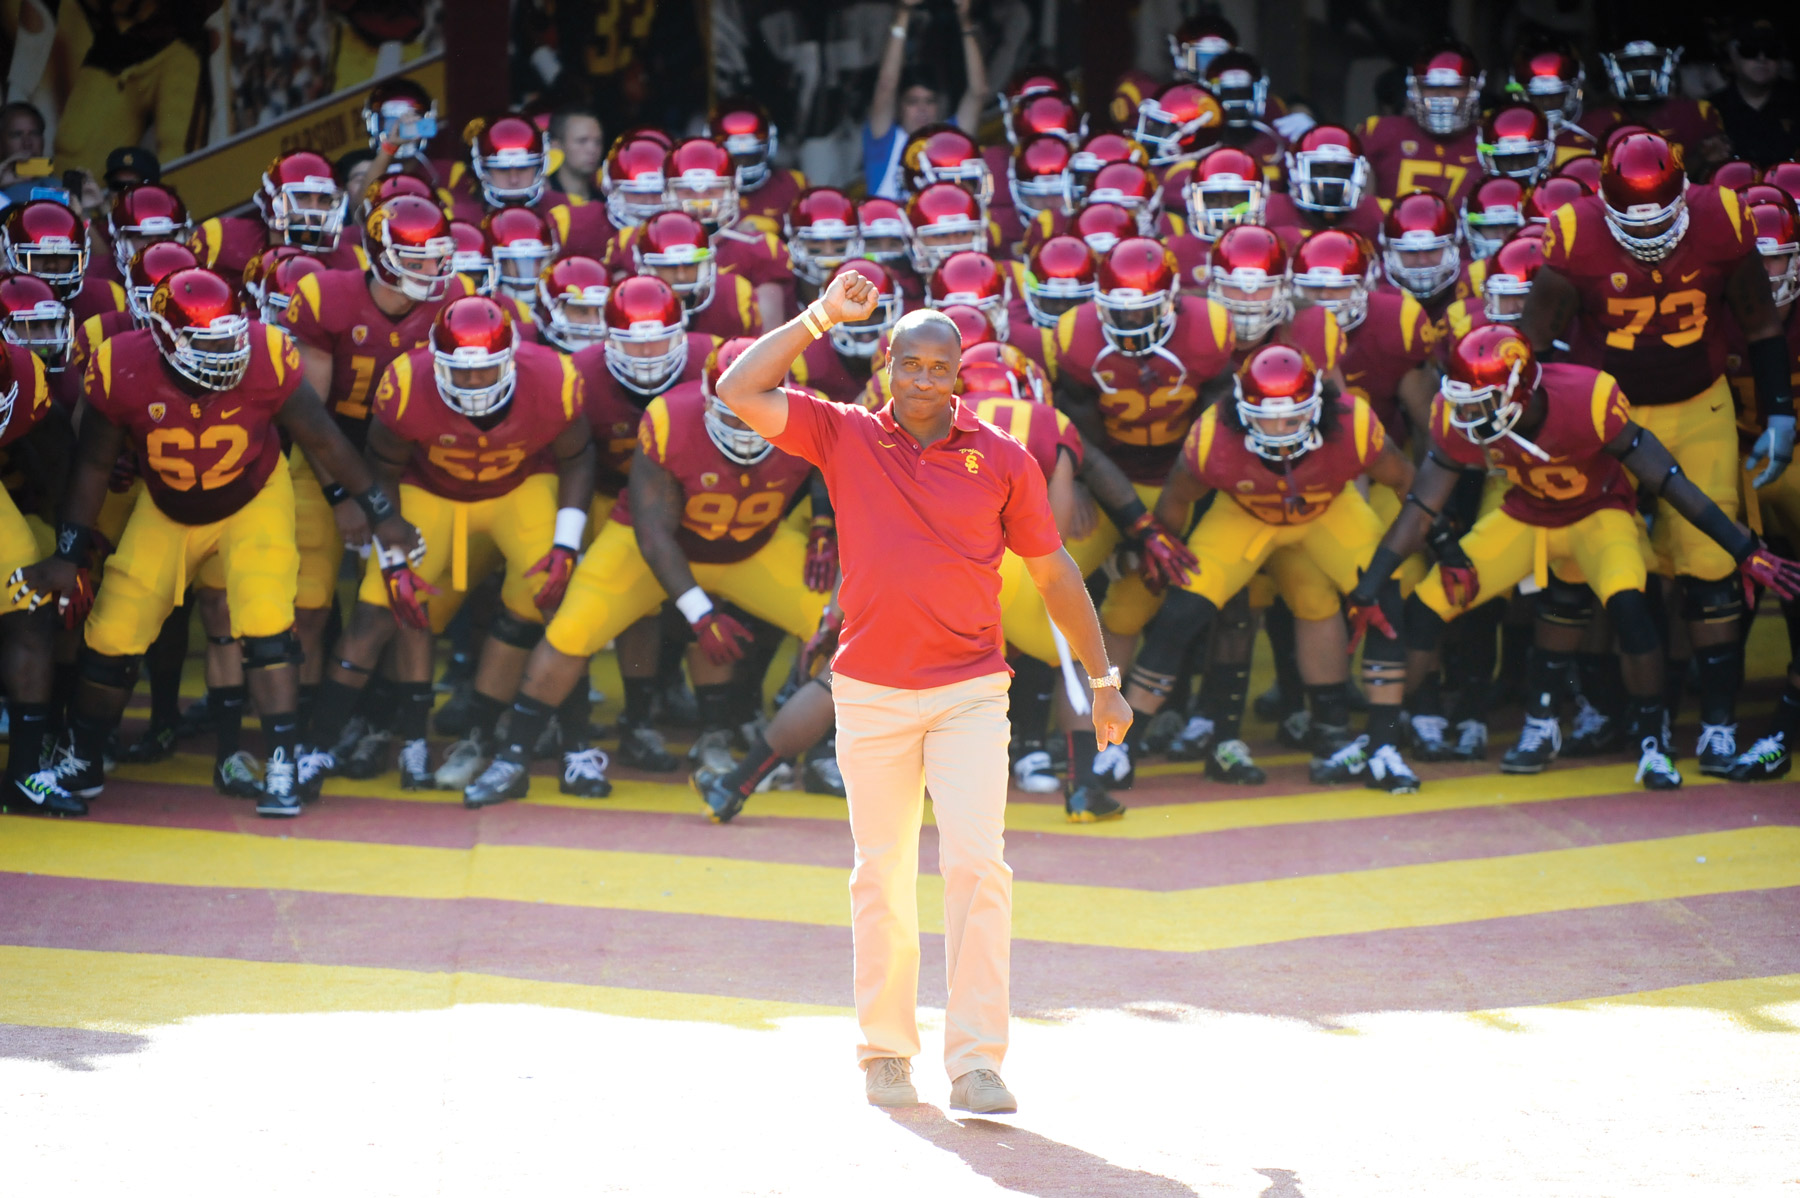 sneakers for cheap 18aad 509b1 Lynn Swann Takes on His Next Breakout Role: USC Athletic ...